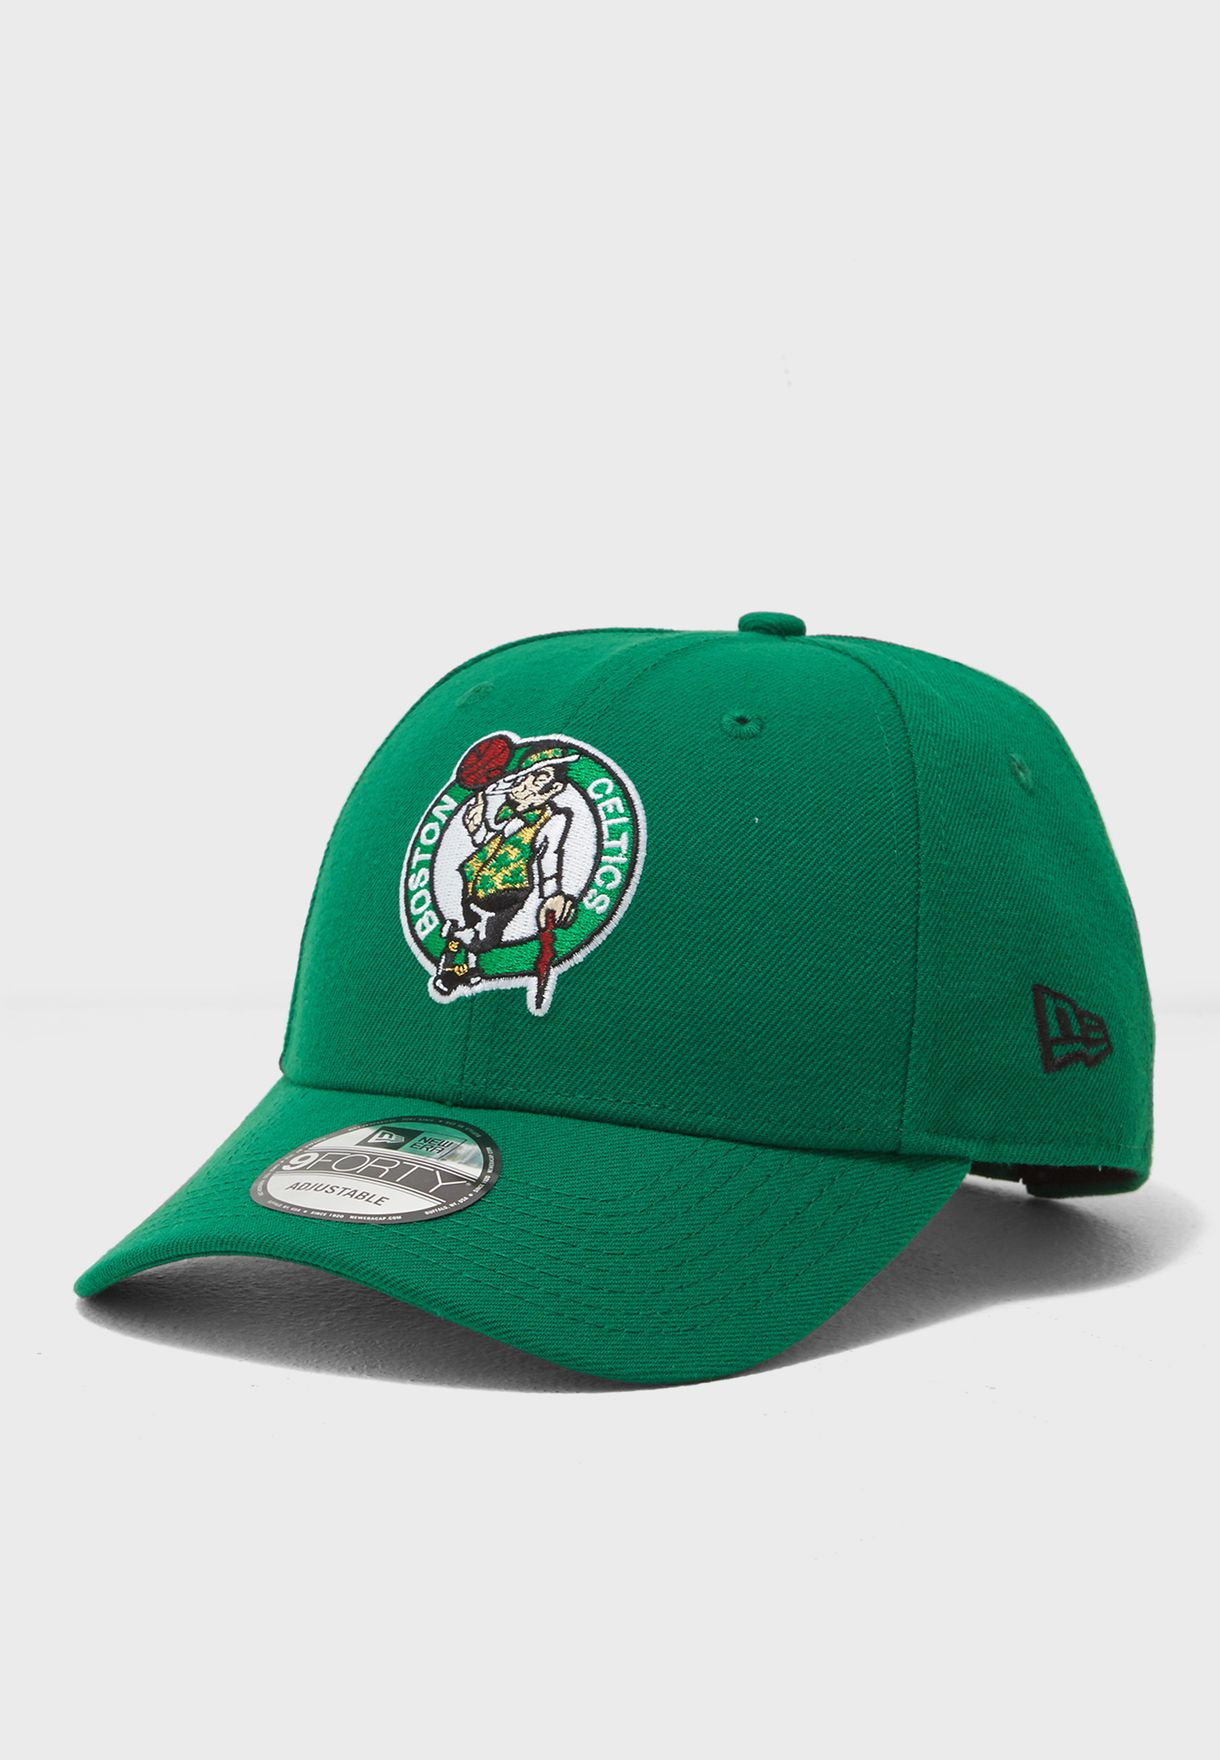 4873448421a official mens boston celtics new era black green official team color 2tone  59fifty fitted hat 8c7e7 900e9  where can i buy 9forty boston celtics cap  2c35b ...